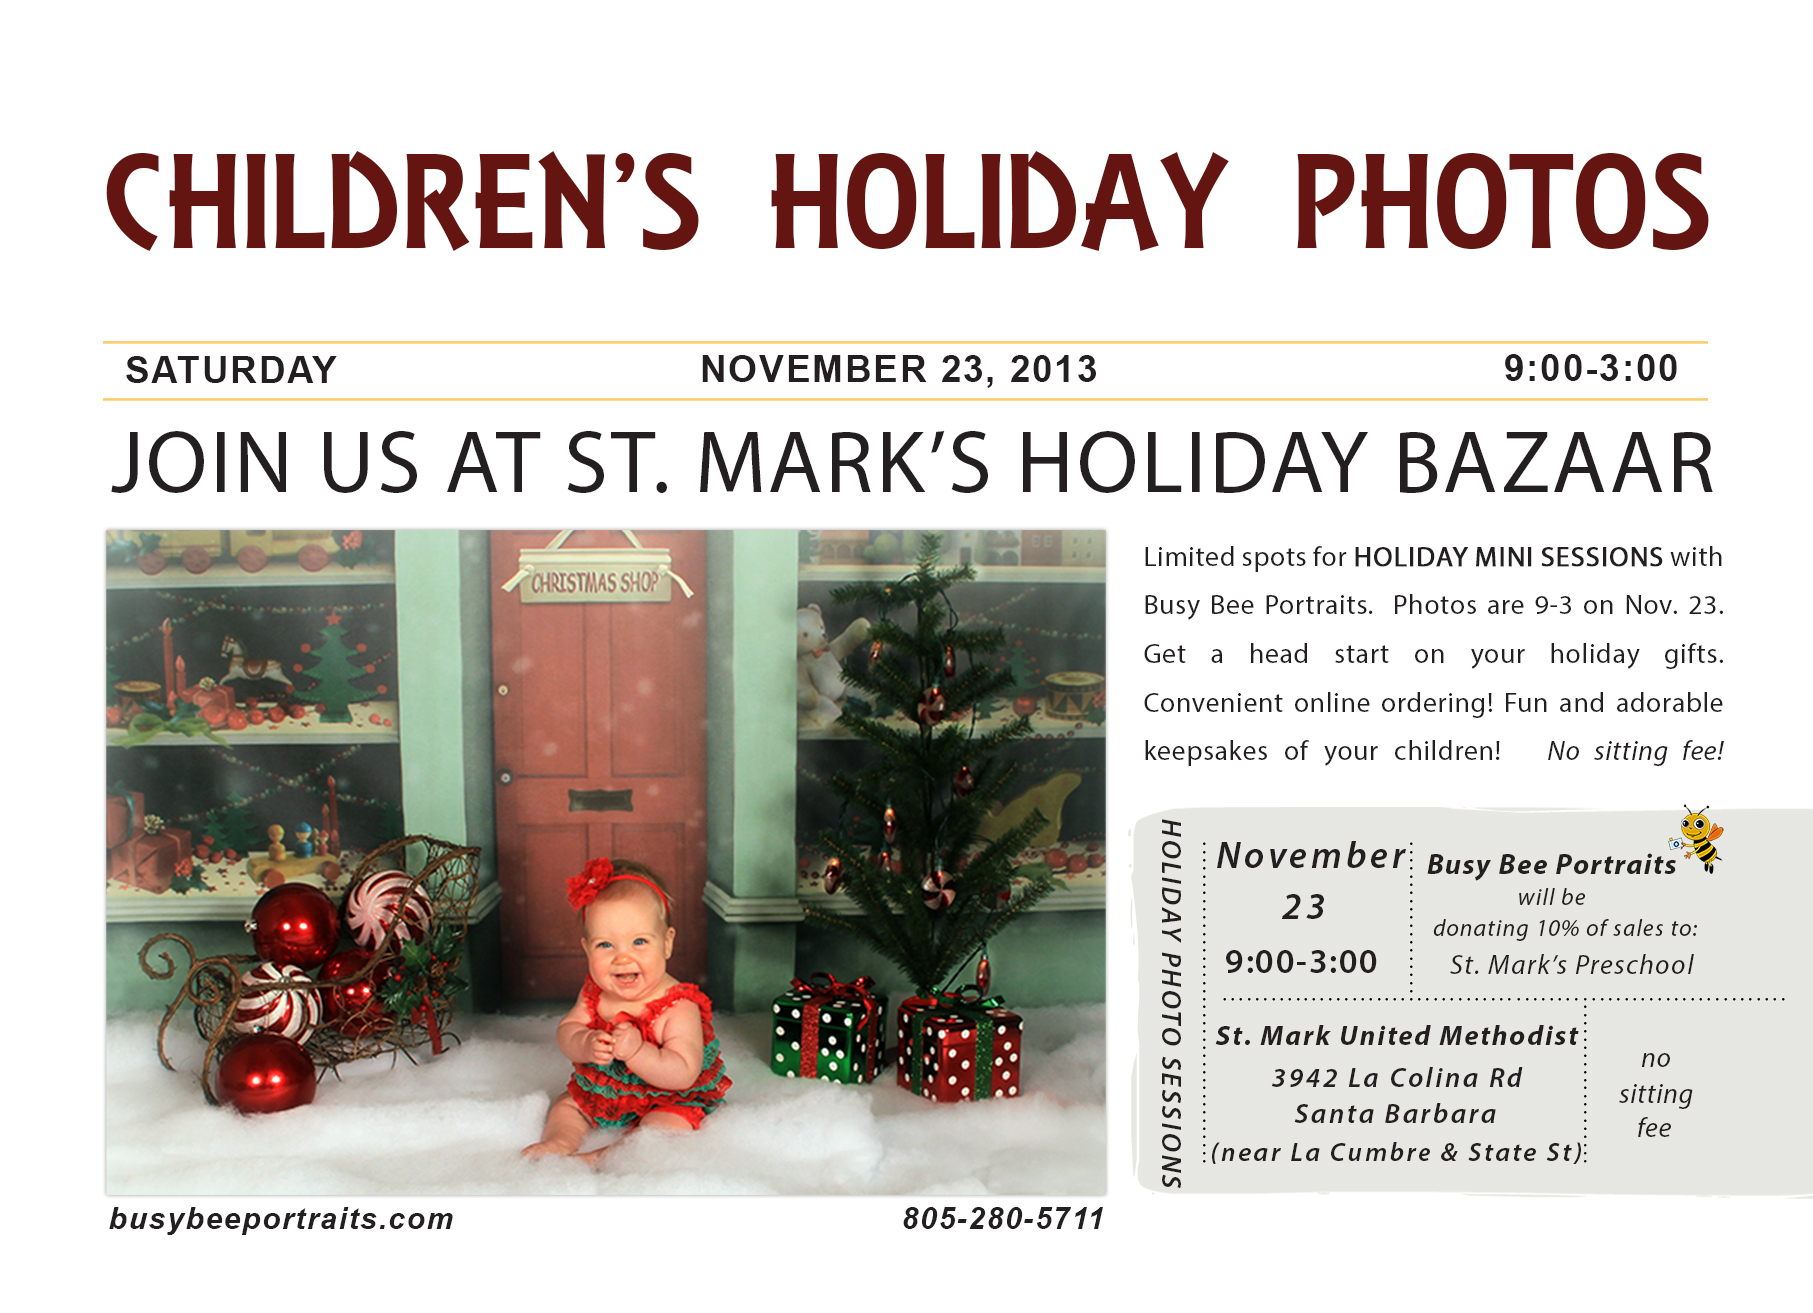 Busy Bee Childrens Holiday Photo, Holiday Mini Sessions, Santa Barbara Children's Photographer, Family Photographer in Santa Barbara